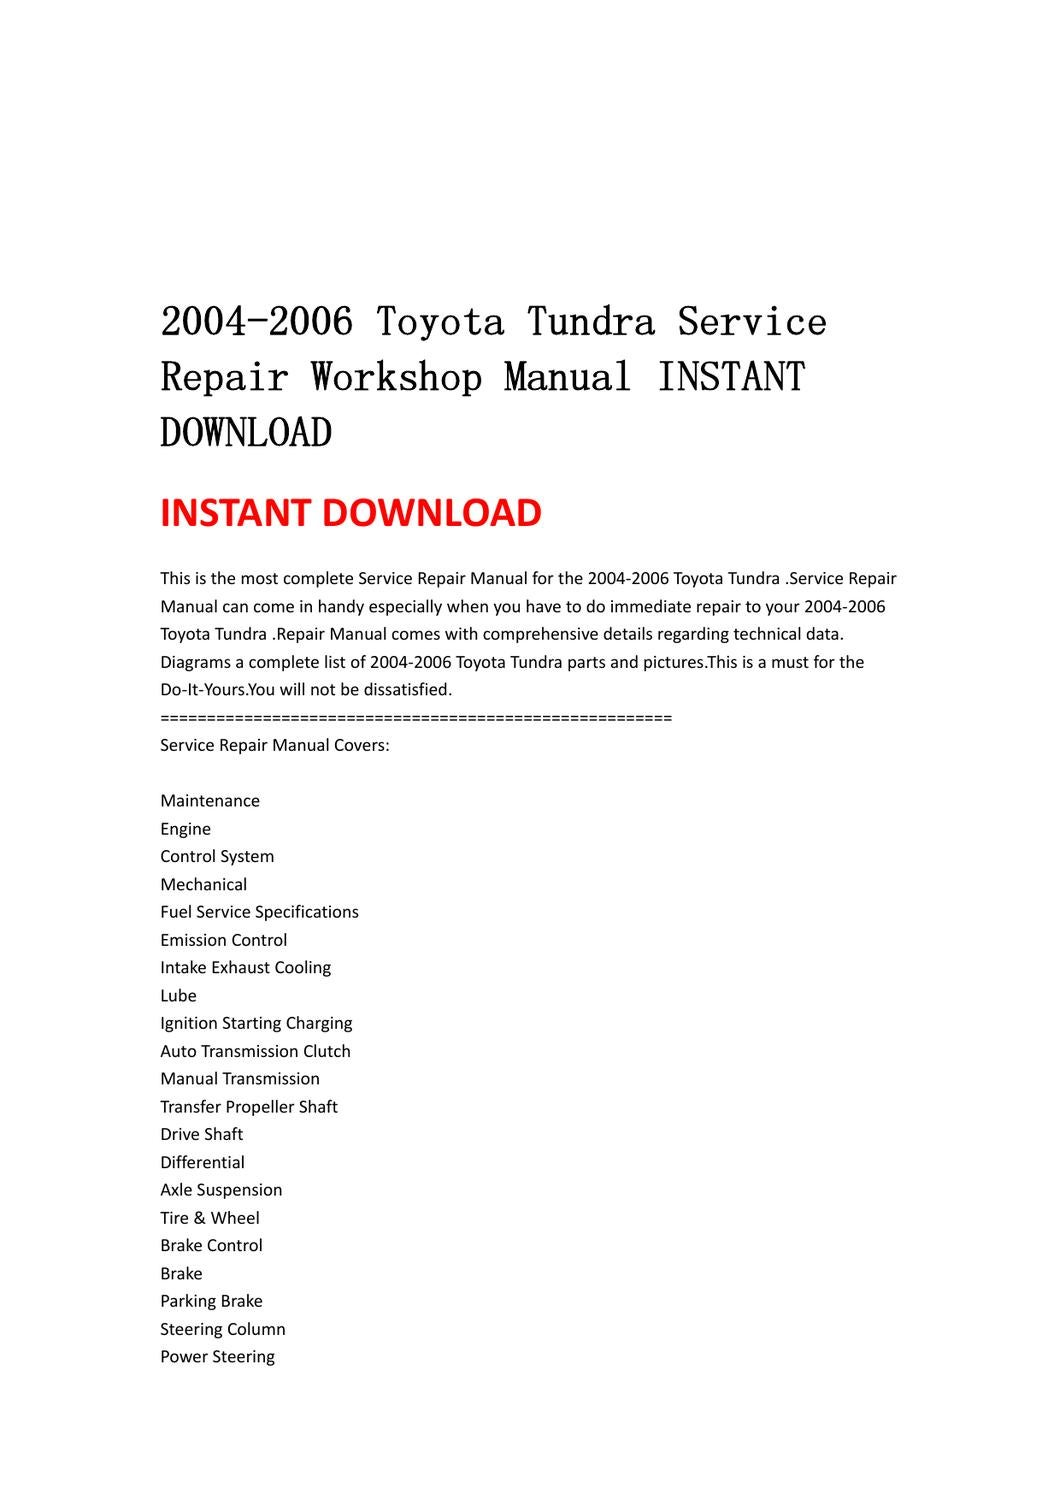 hight resolution of 1990 toyota supra service repair workshop manual instant download by chen wei issuu